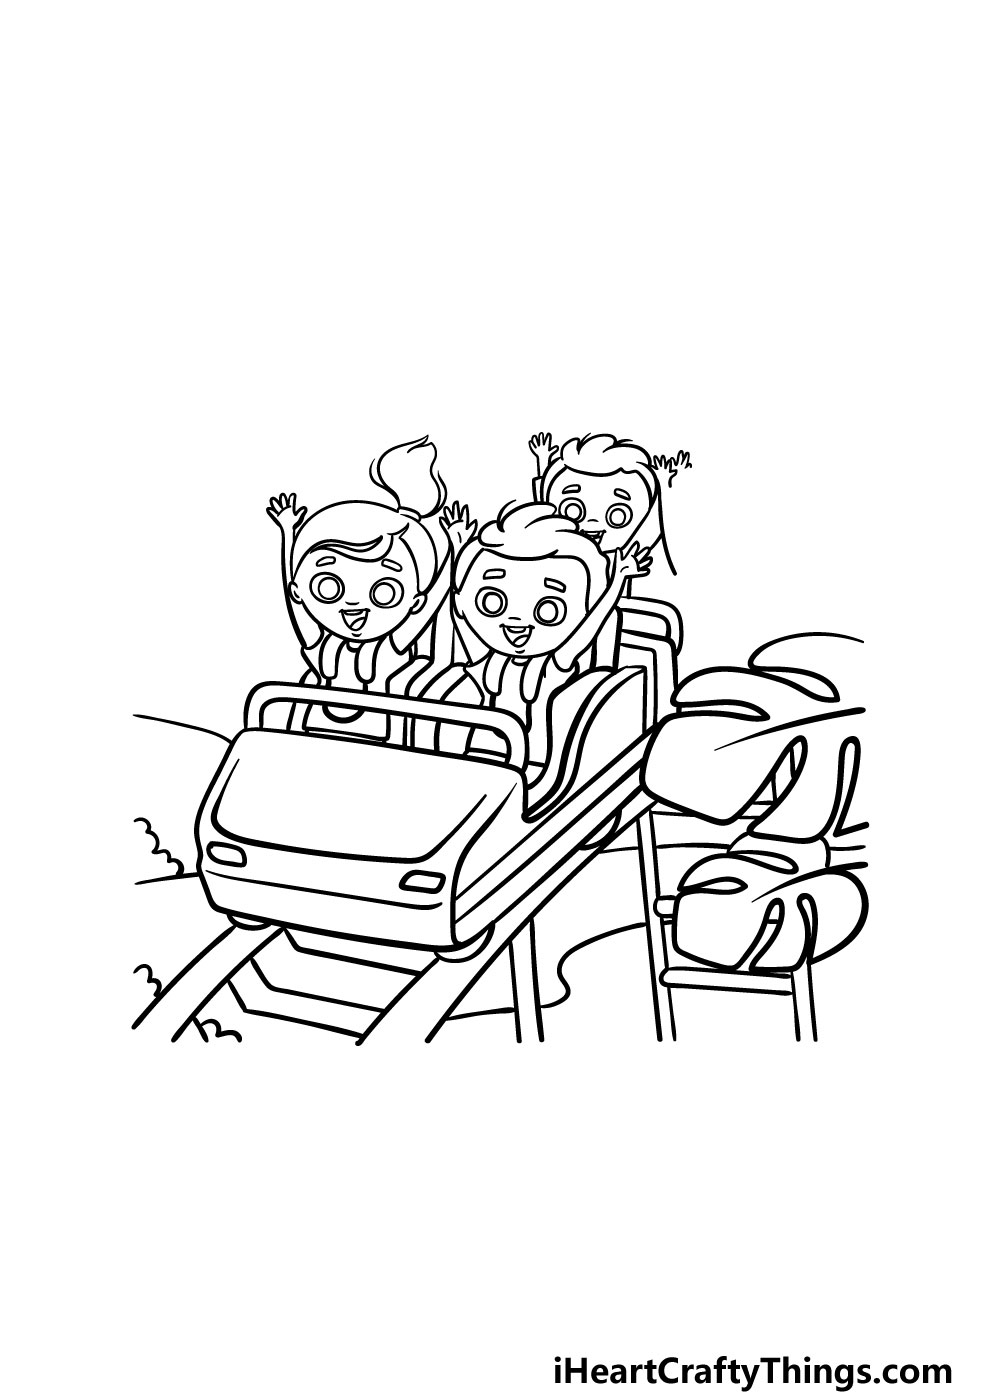 drawing a roller coaster step 5